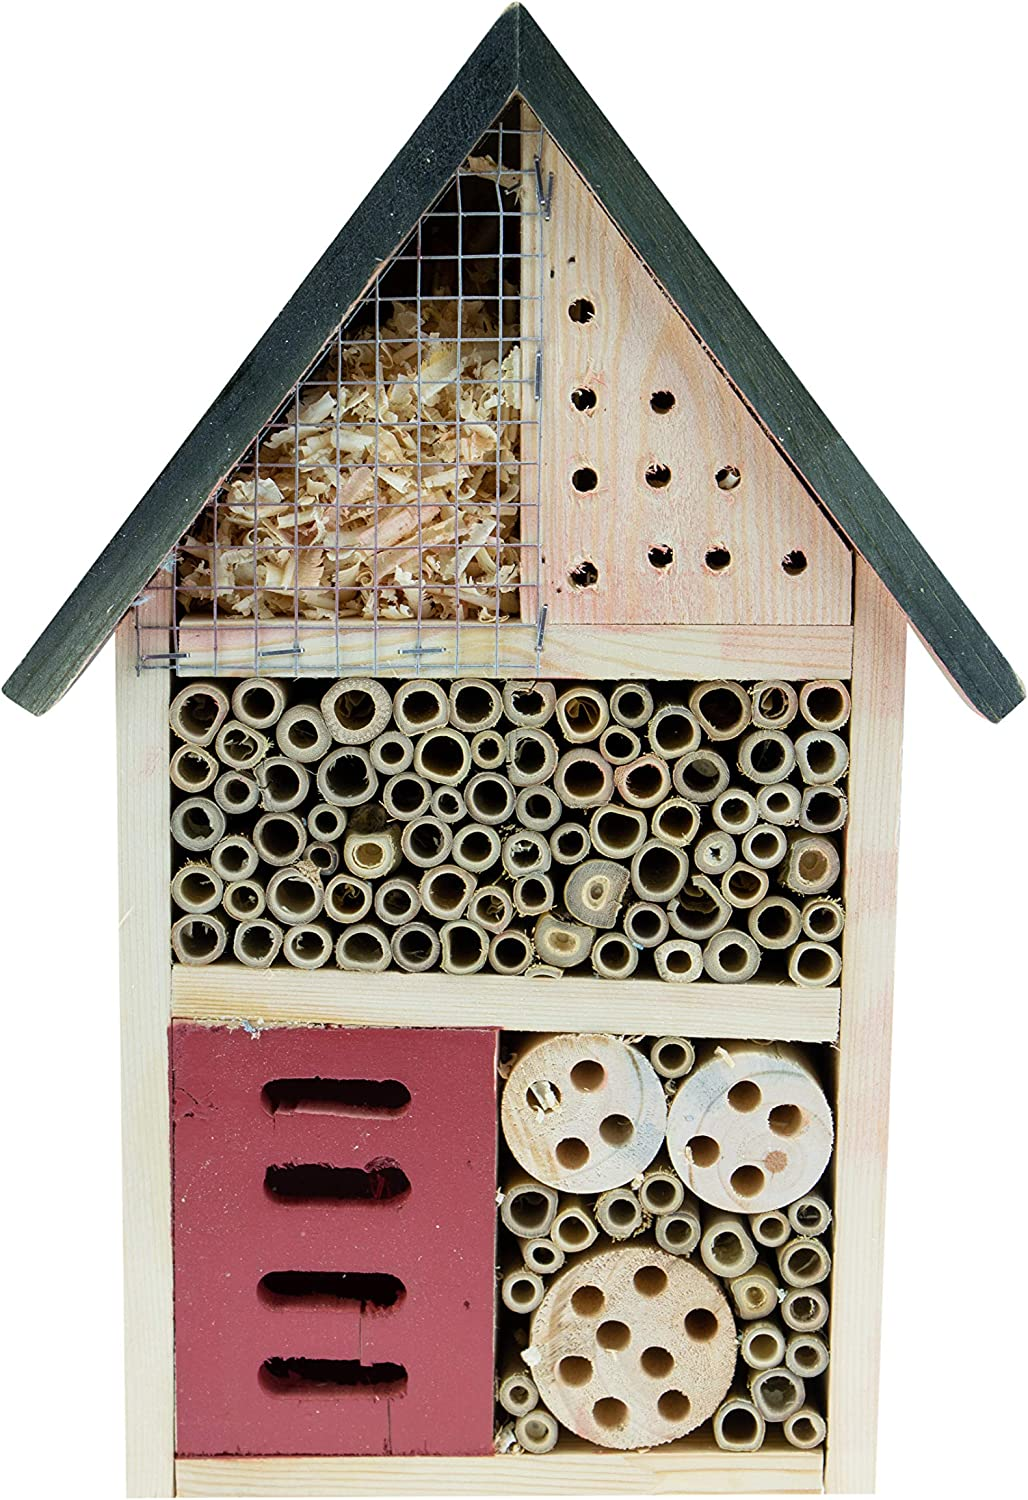 Clever Garden | Wooden Insect Hotel 24x9x36 cm| Great for All Types of Outside Insects